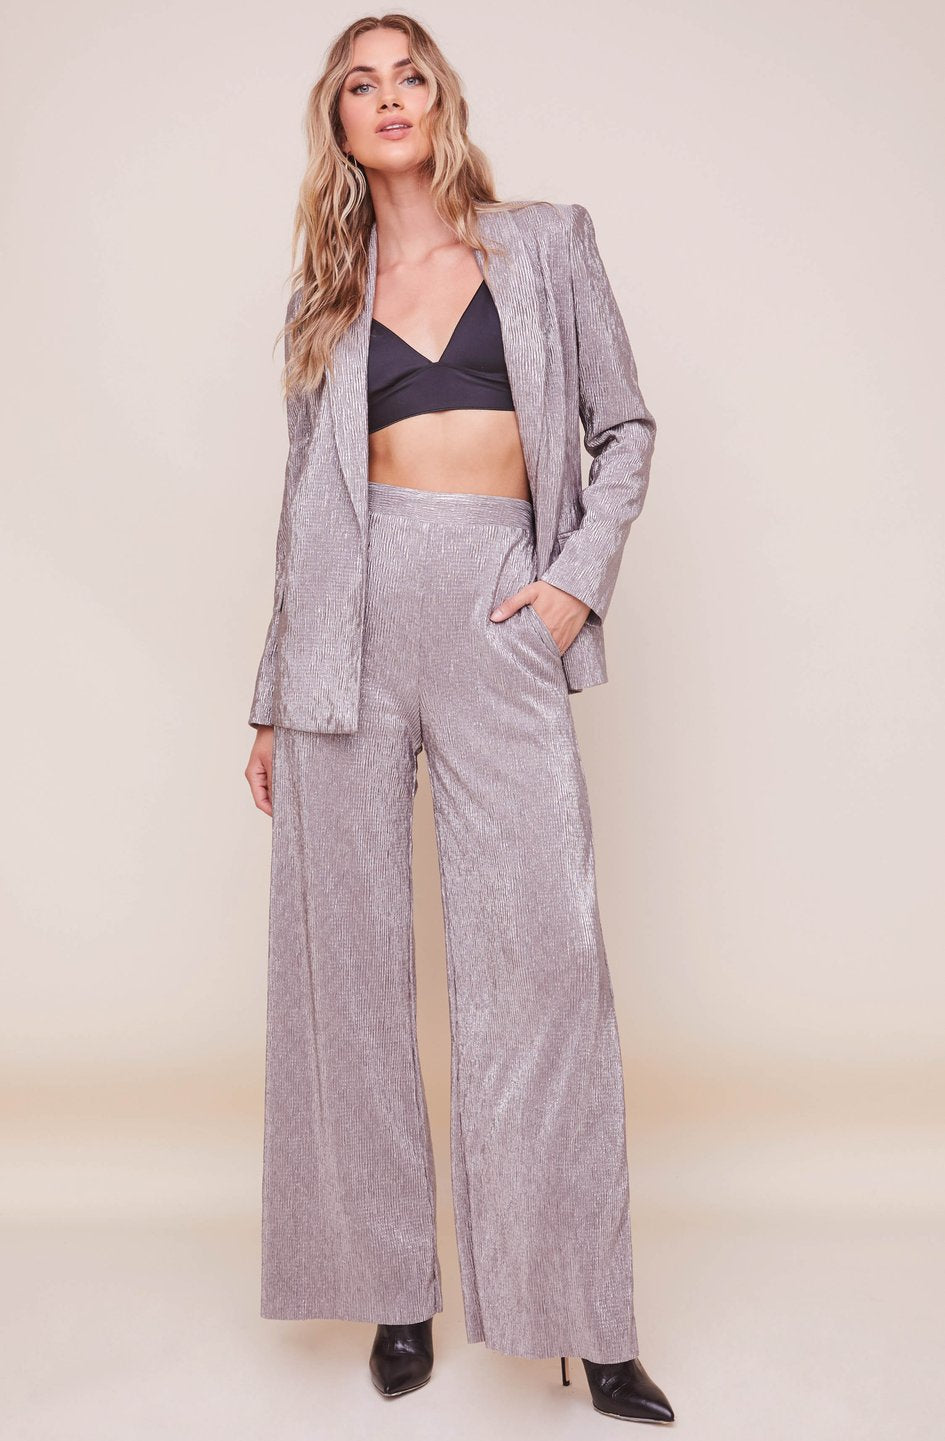 The Aileen Wide Leg Pant in Pewter